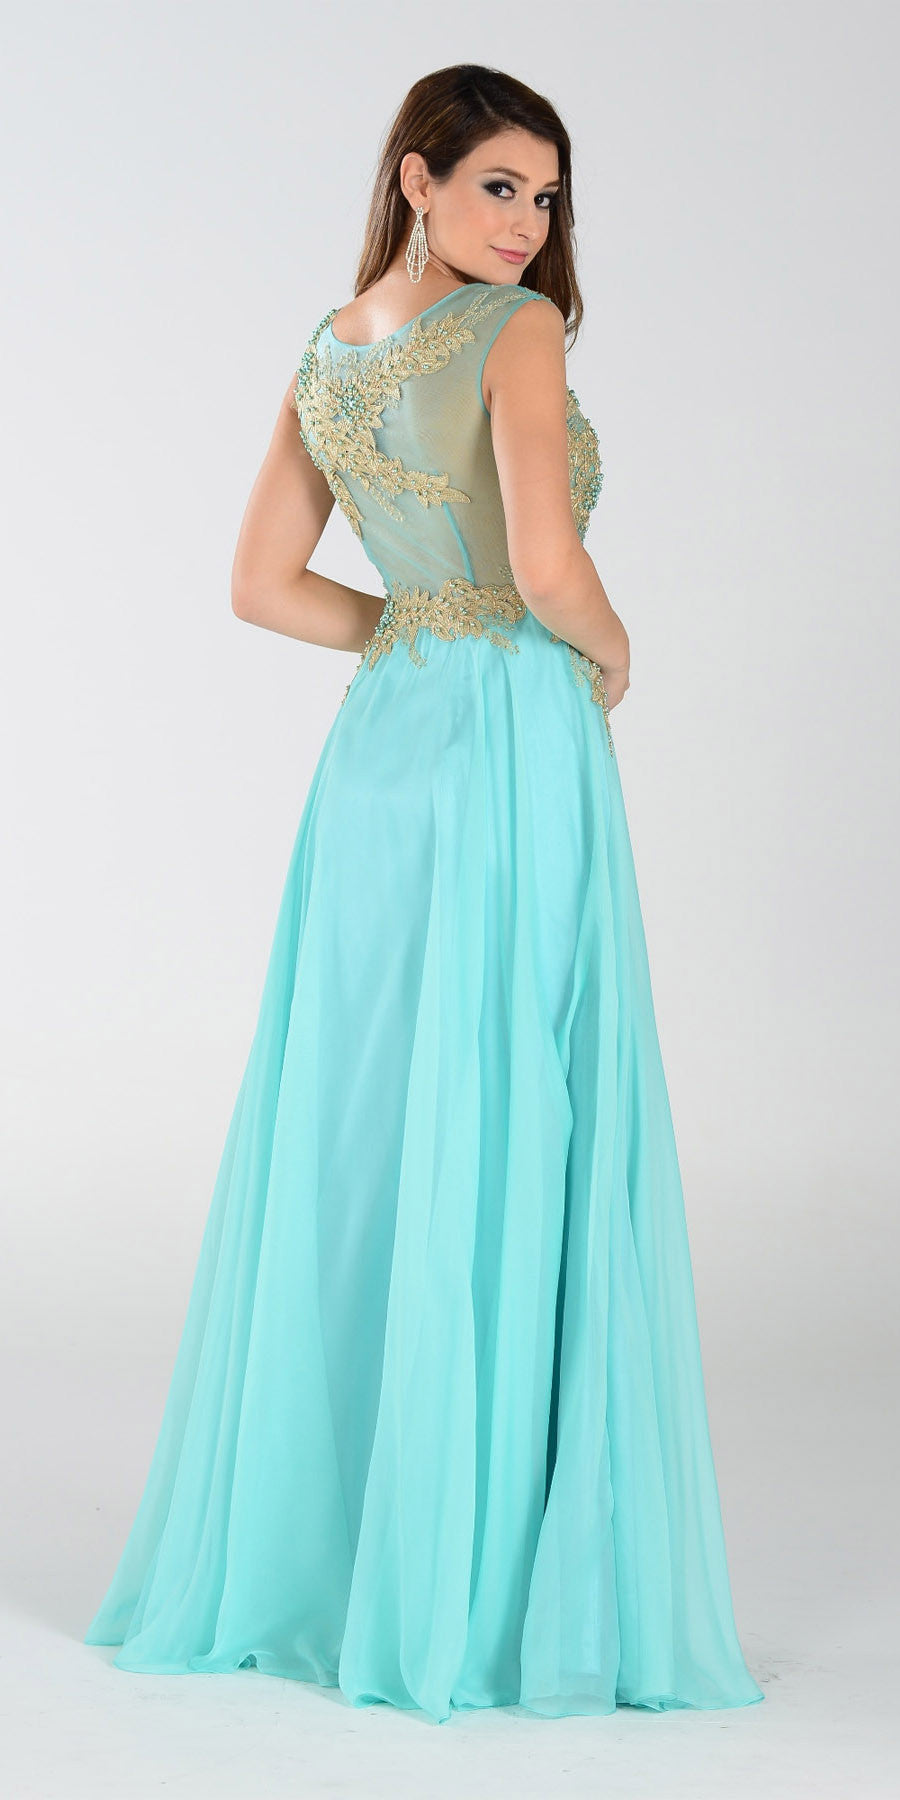 ON SPECIAL LIMITED STOCK - Poly USA 7328 Long A Line Mint/Gold Prom Dress Chiffon Lace Appliques